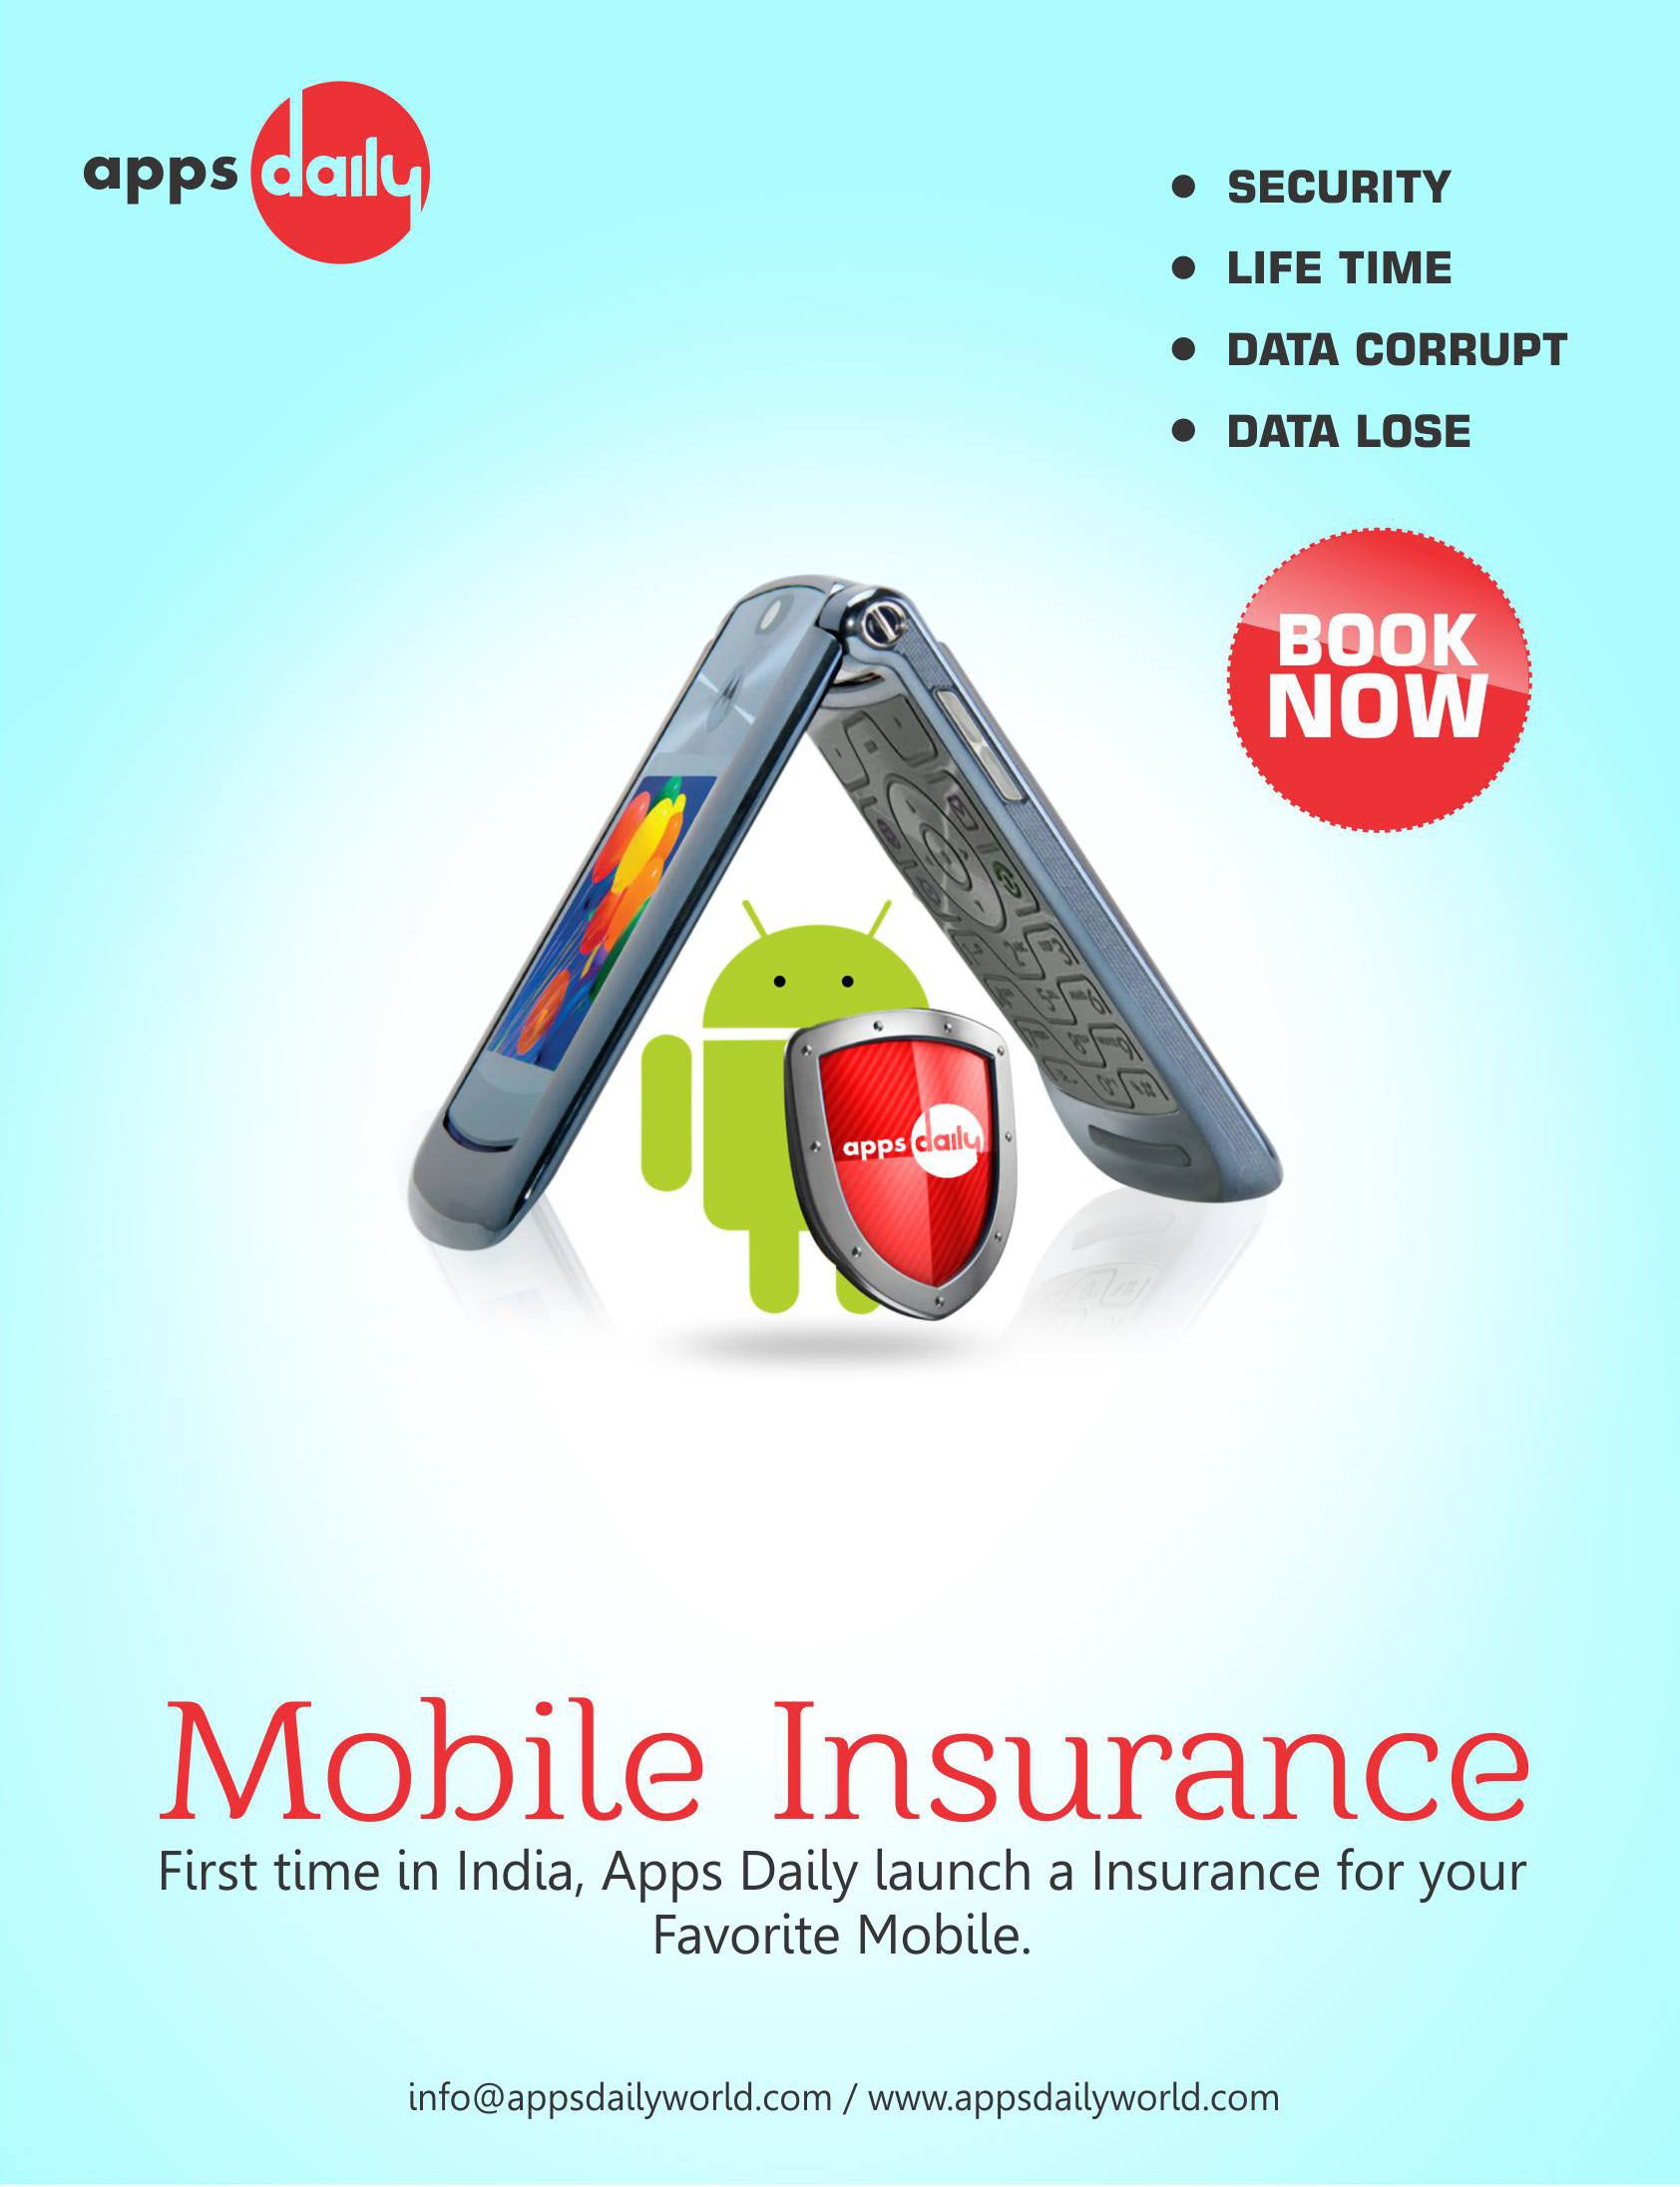 Apps Daily Mobile Insurance. Creative words, App